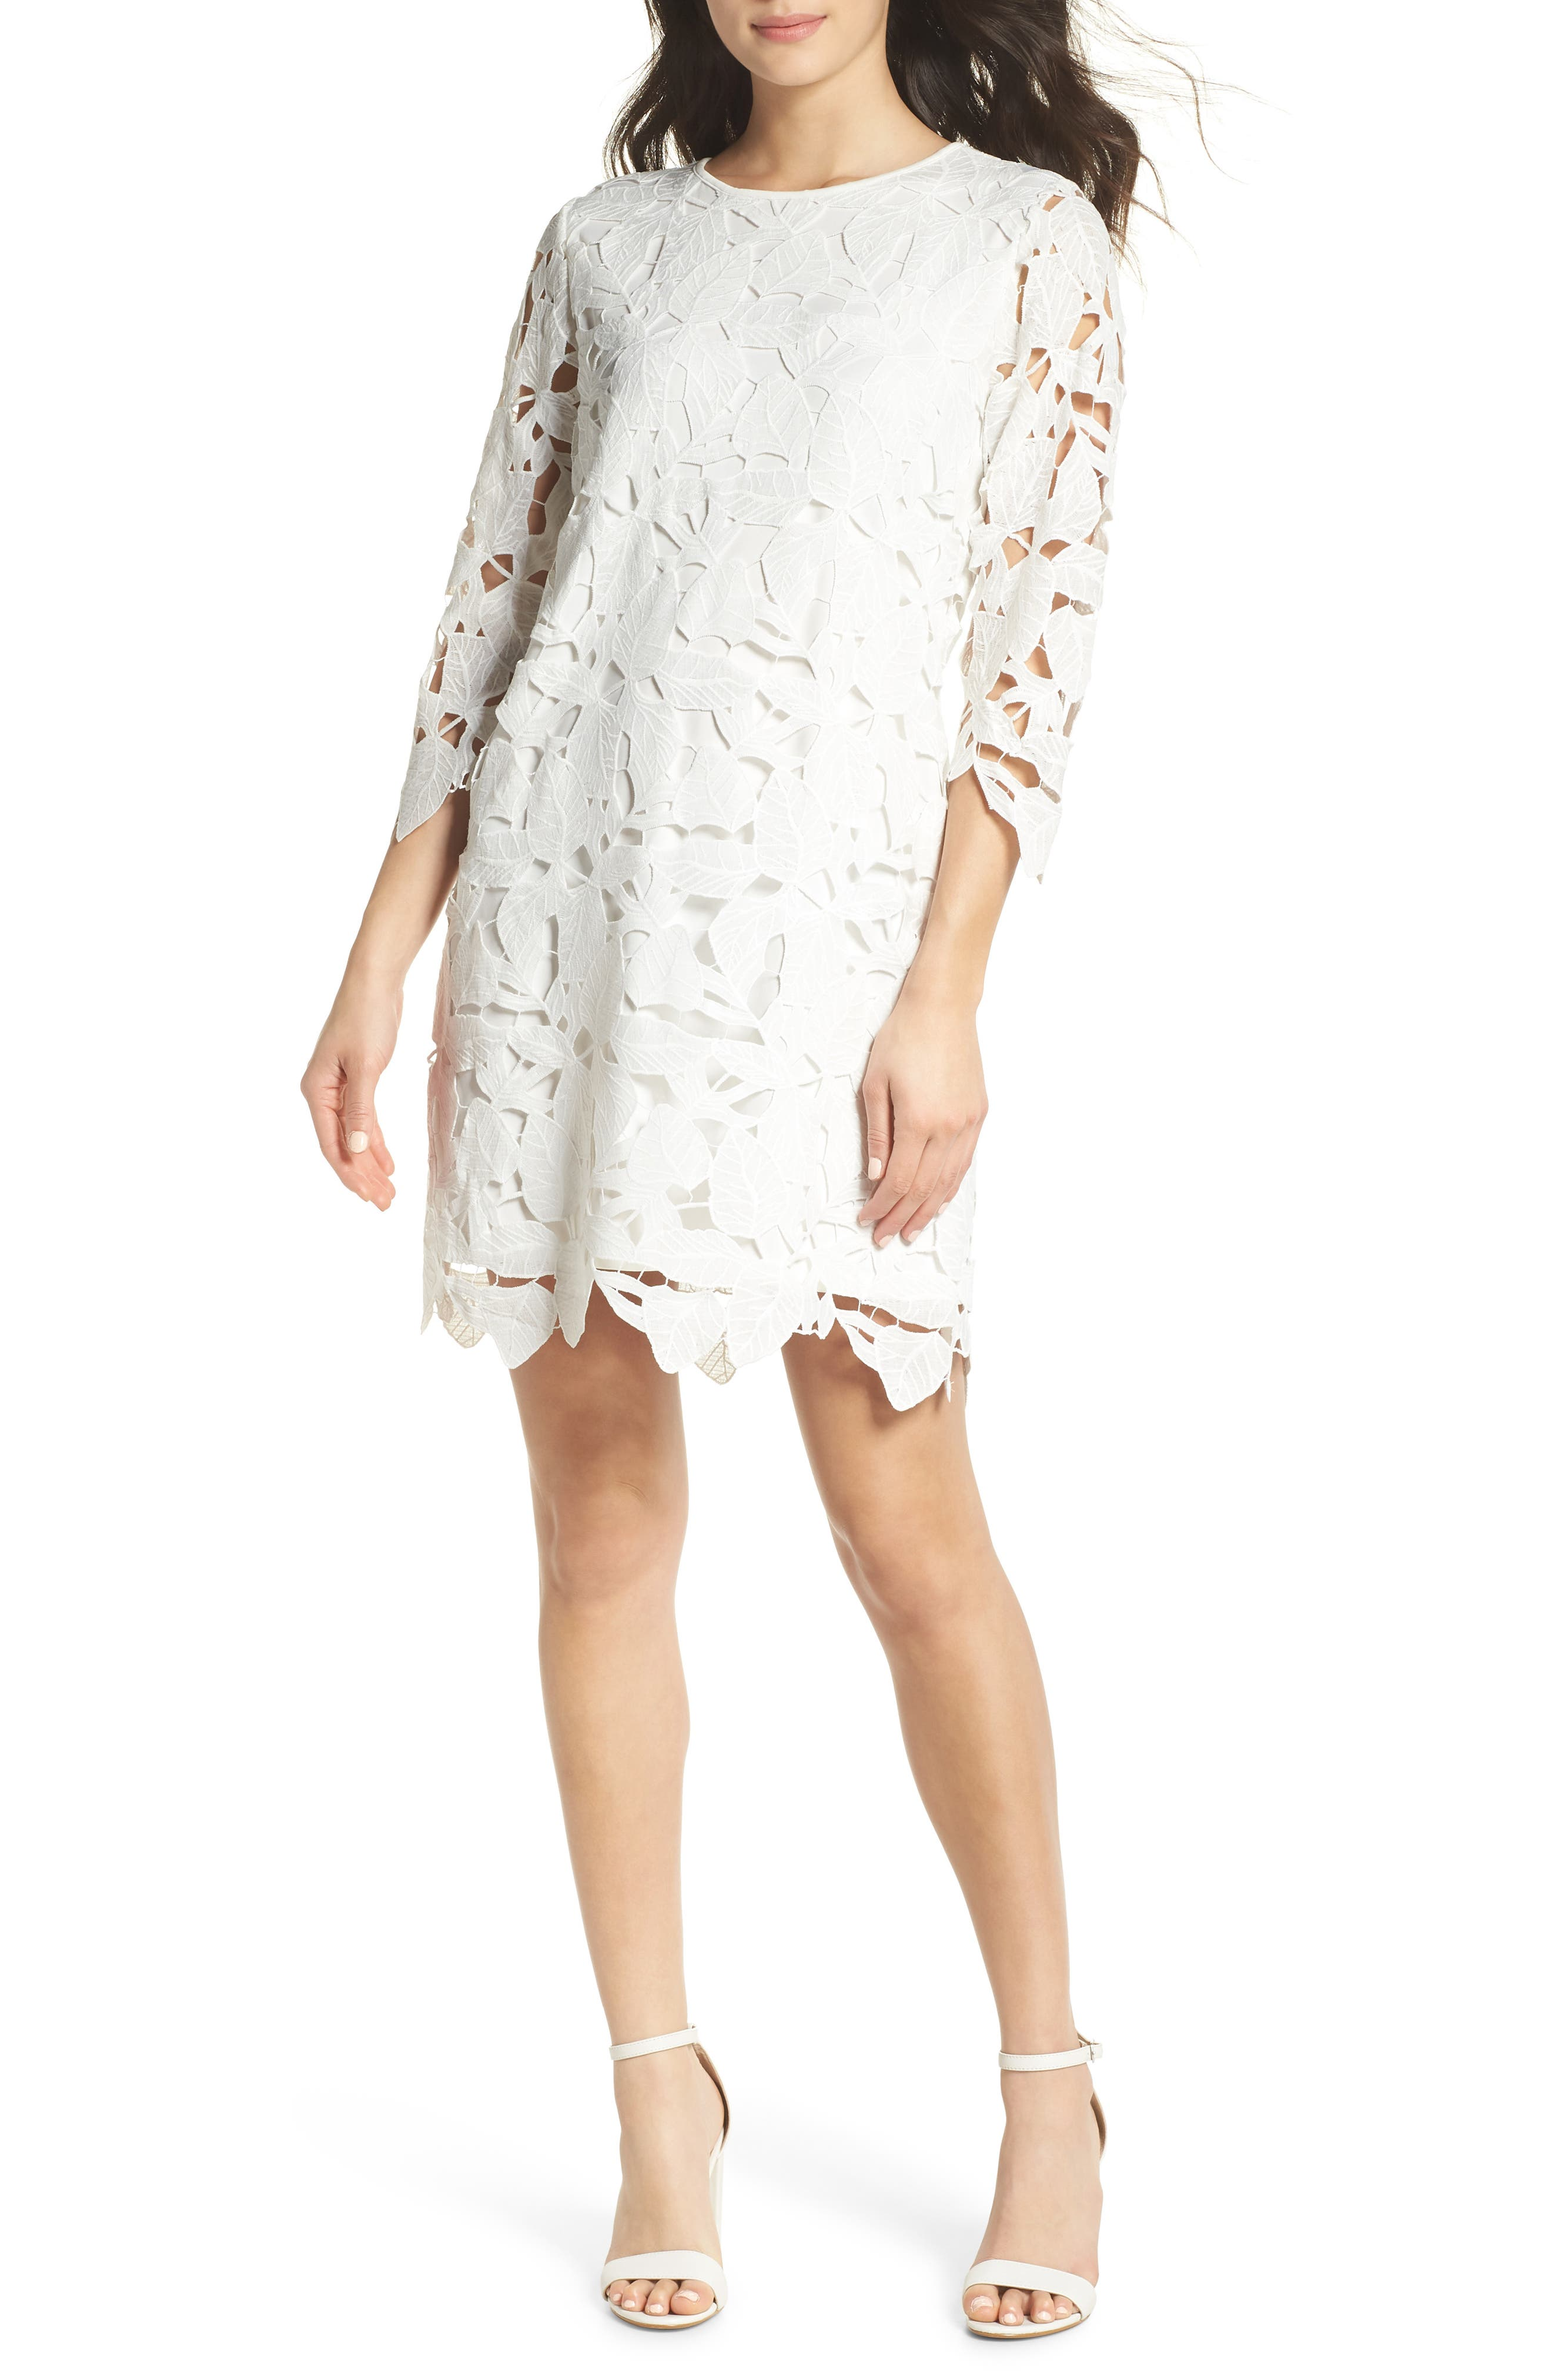 Main Image - Felicity & Coco Skye Lace Shift Dress